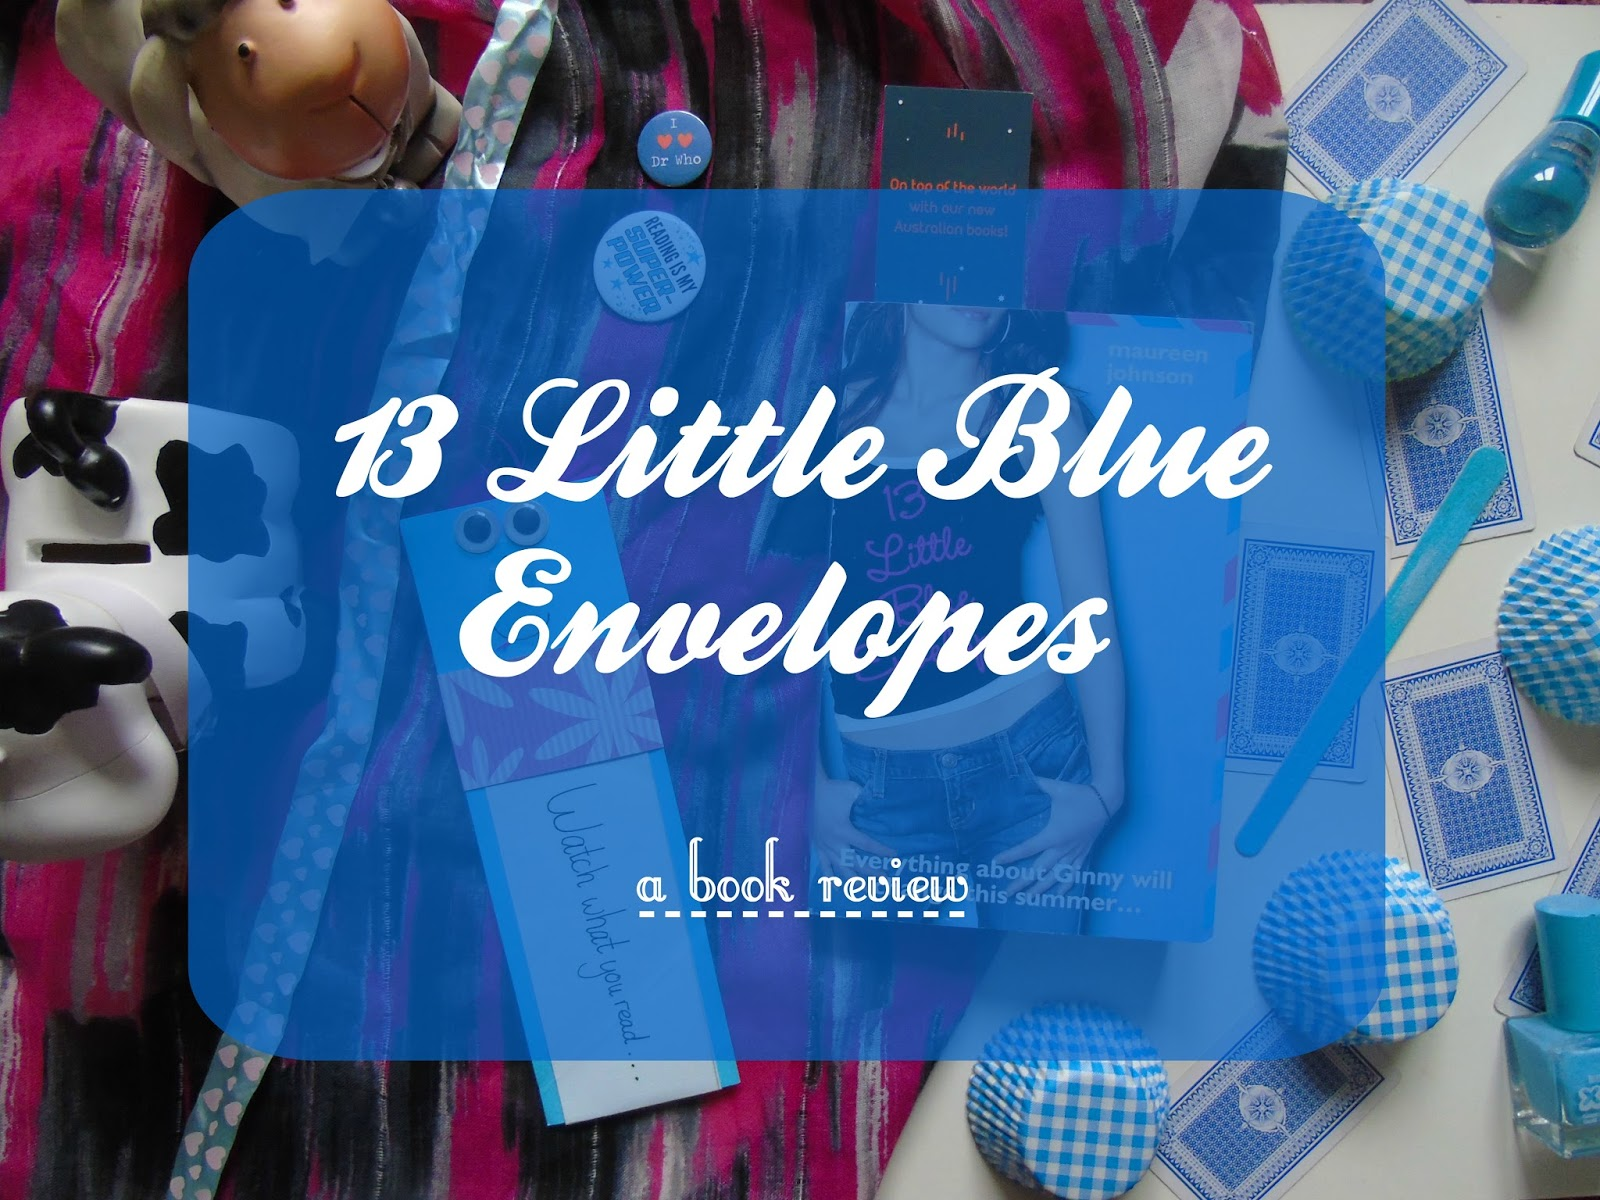 13 envelopes 13 free printable envelope templates | free envelope design templates to print out quickly to make an envelope, use as a gift card holder, mailing a letter.